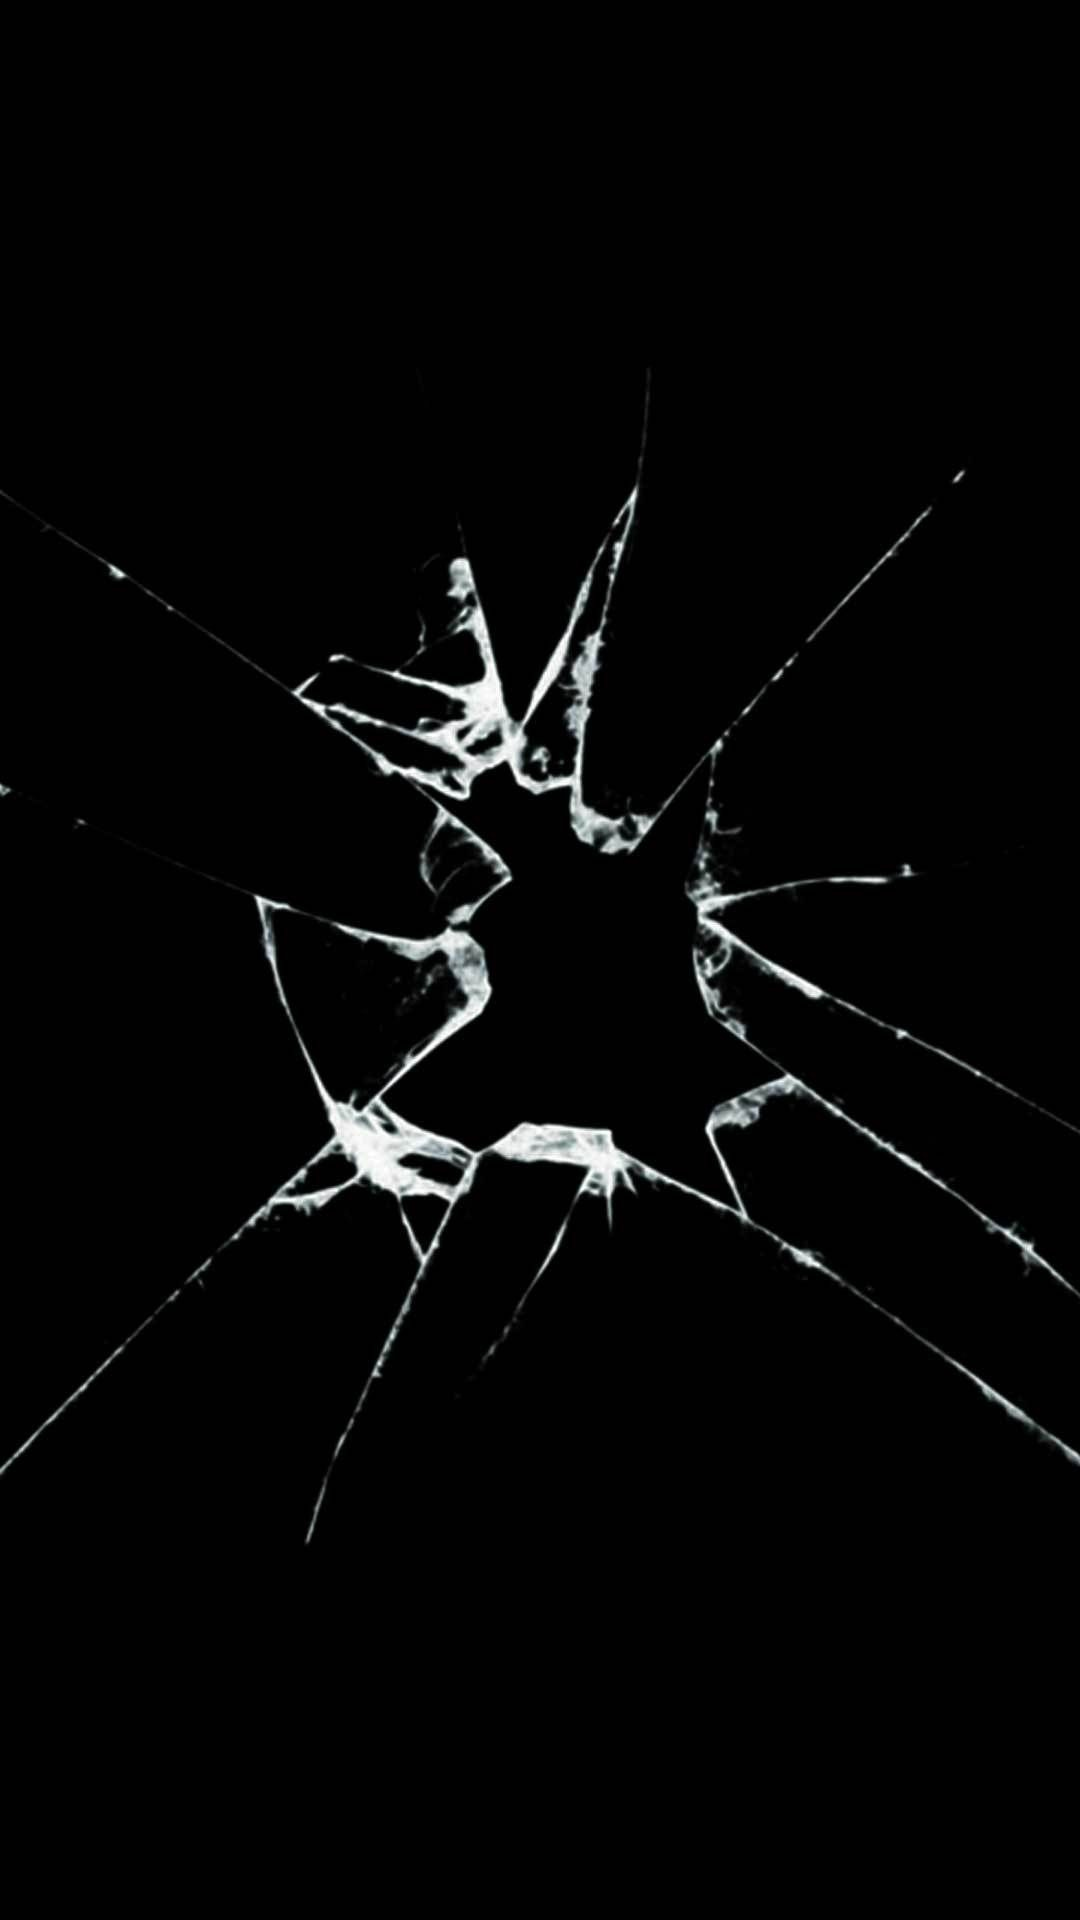 Cracked Phone Screen Wallpaper Hd Çizimler ve Dokular